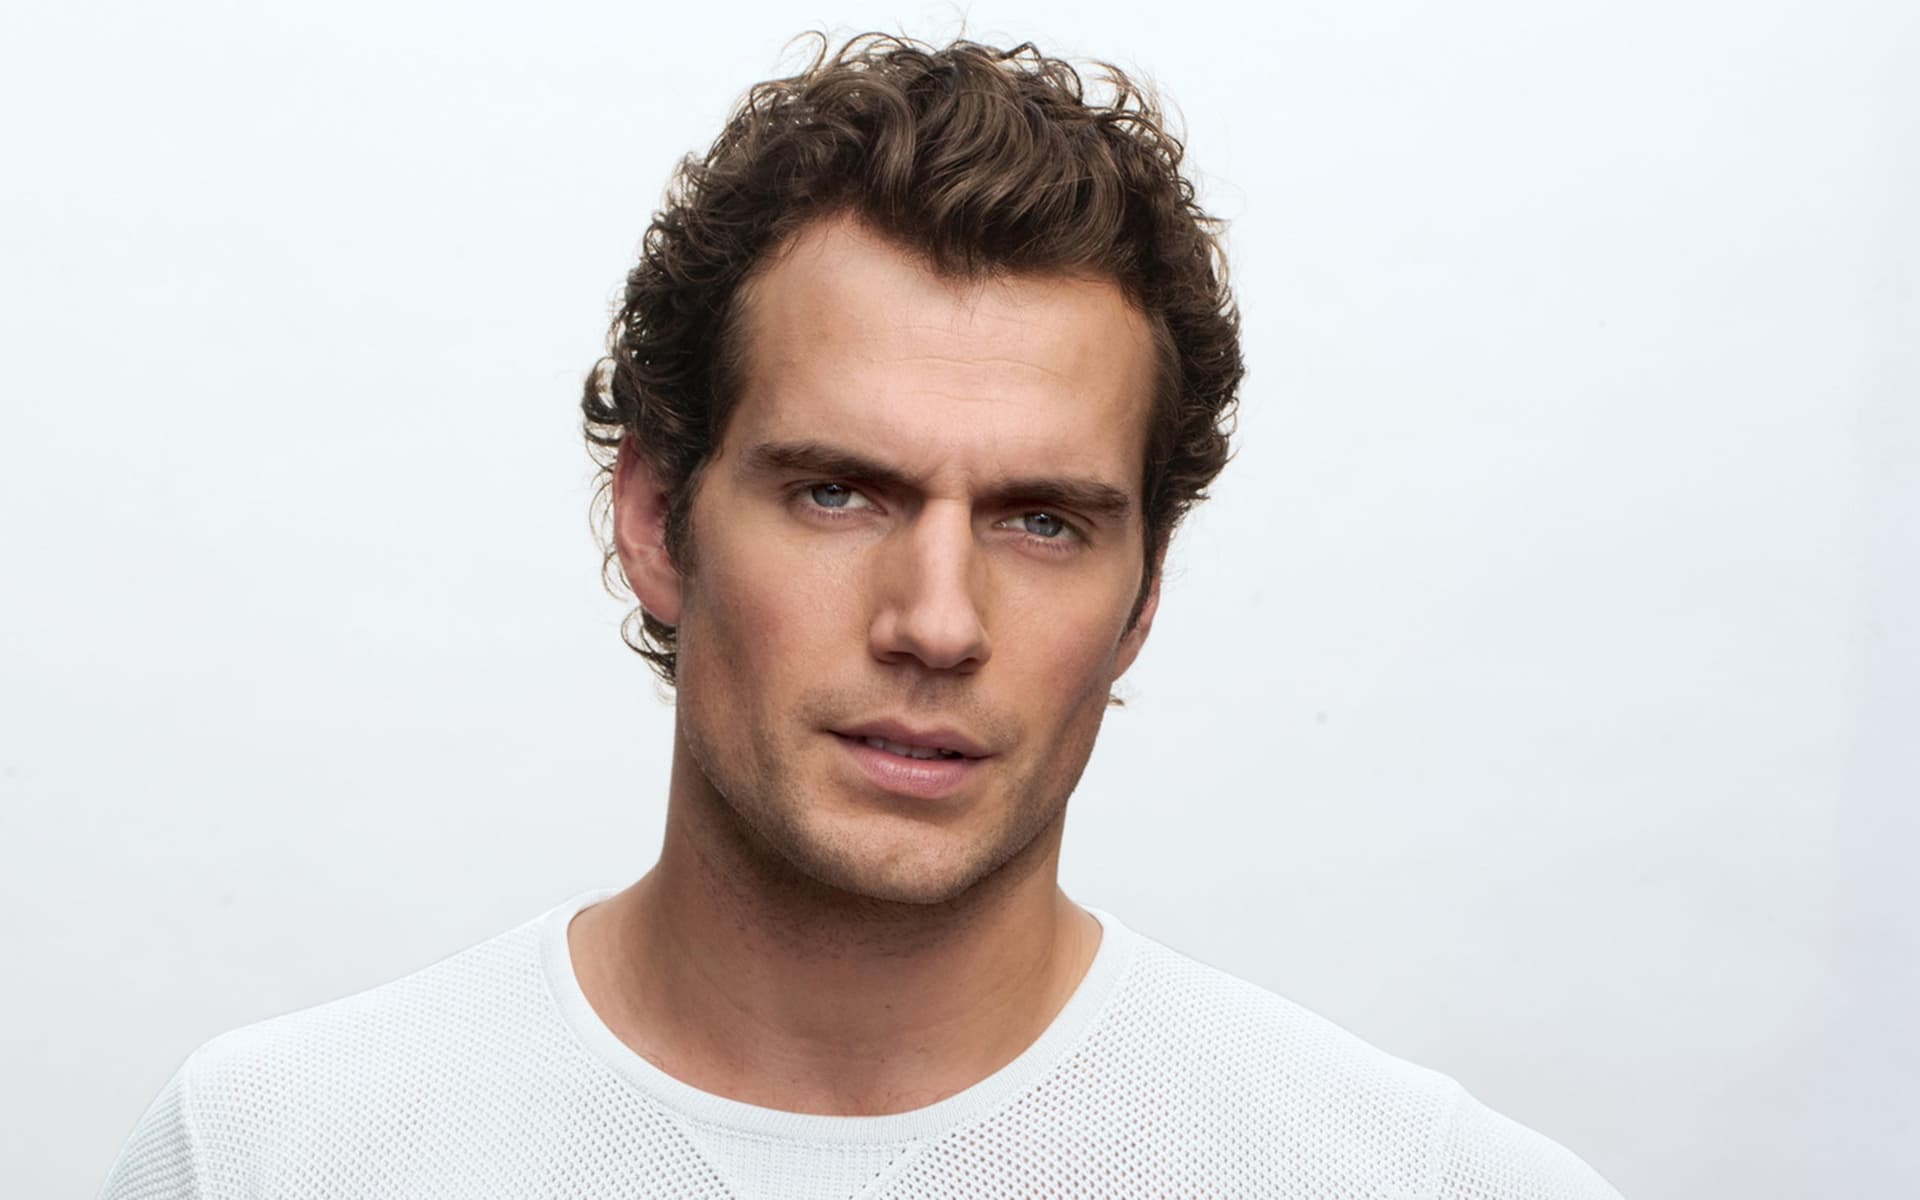 Car Hd Wallpapers Free Download For Pc 20 Henry Cavill Wallpapers High Quality Resolution Download